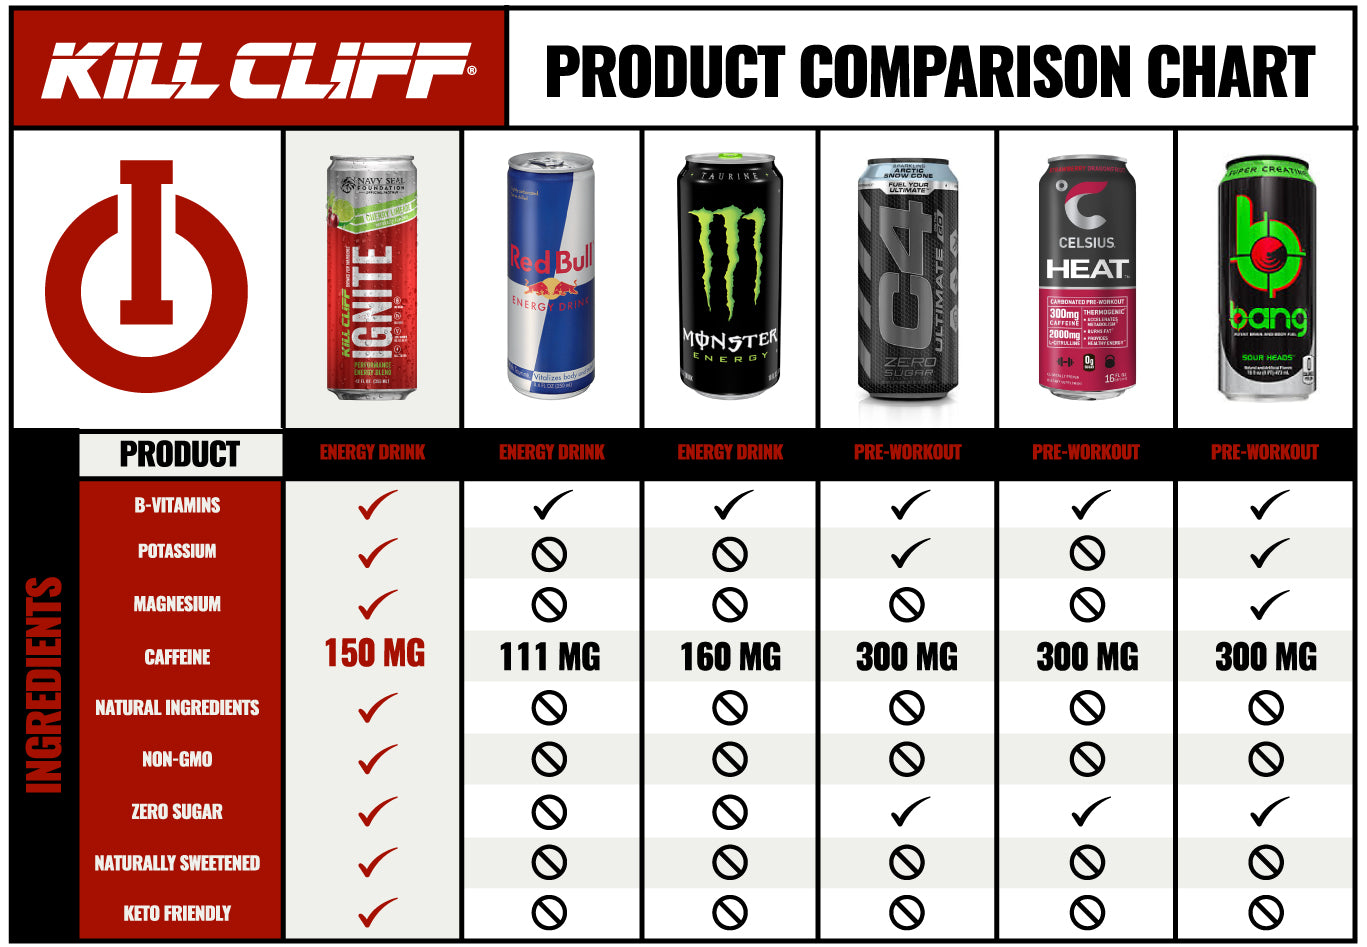 Kill Cliff Ignite Cherry Limeade Comparison